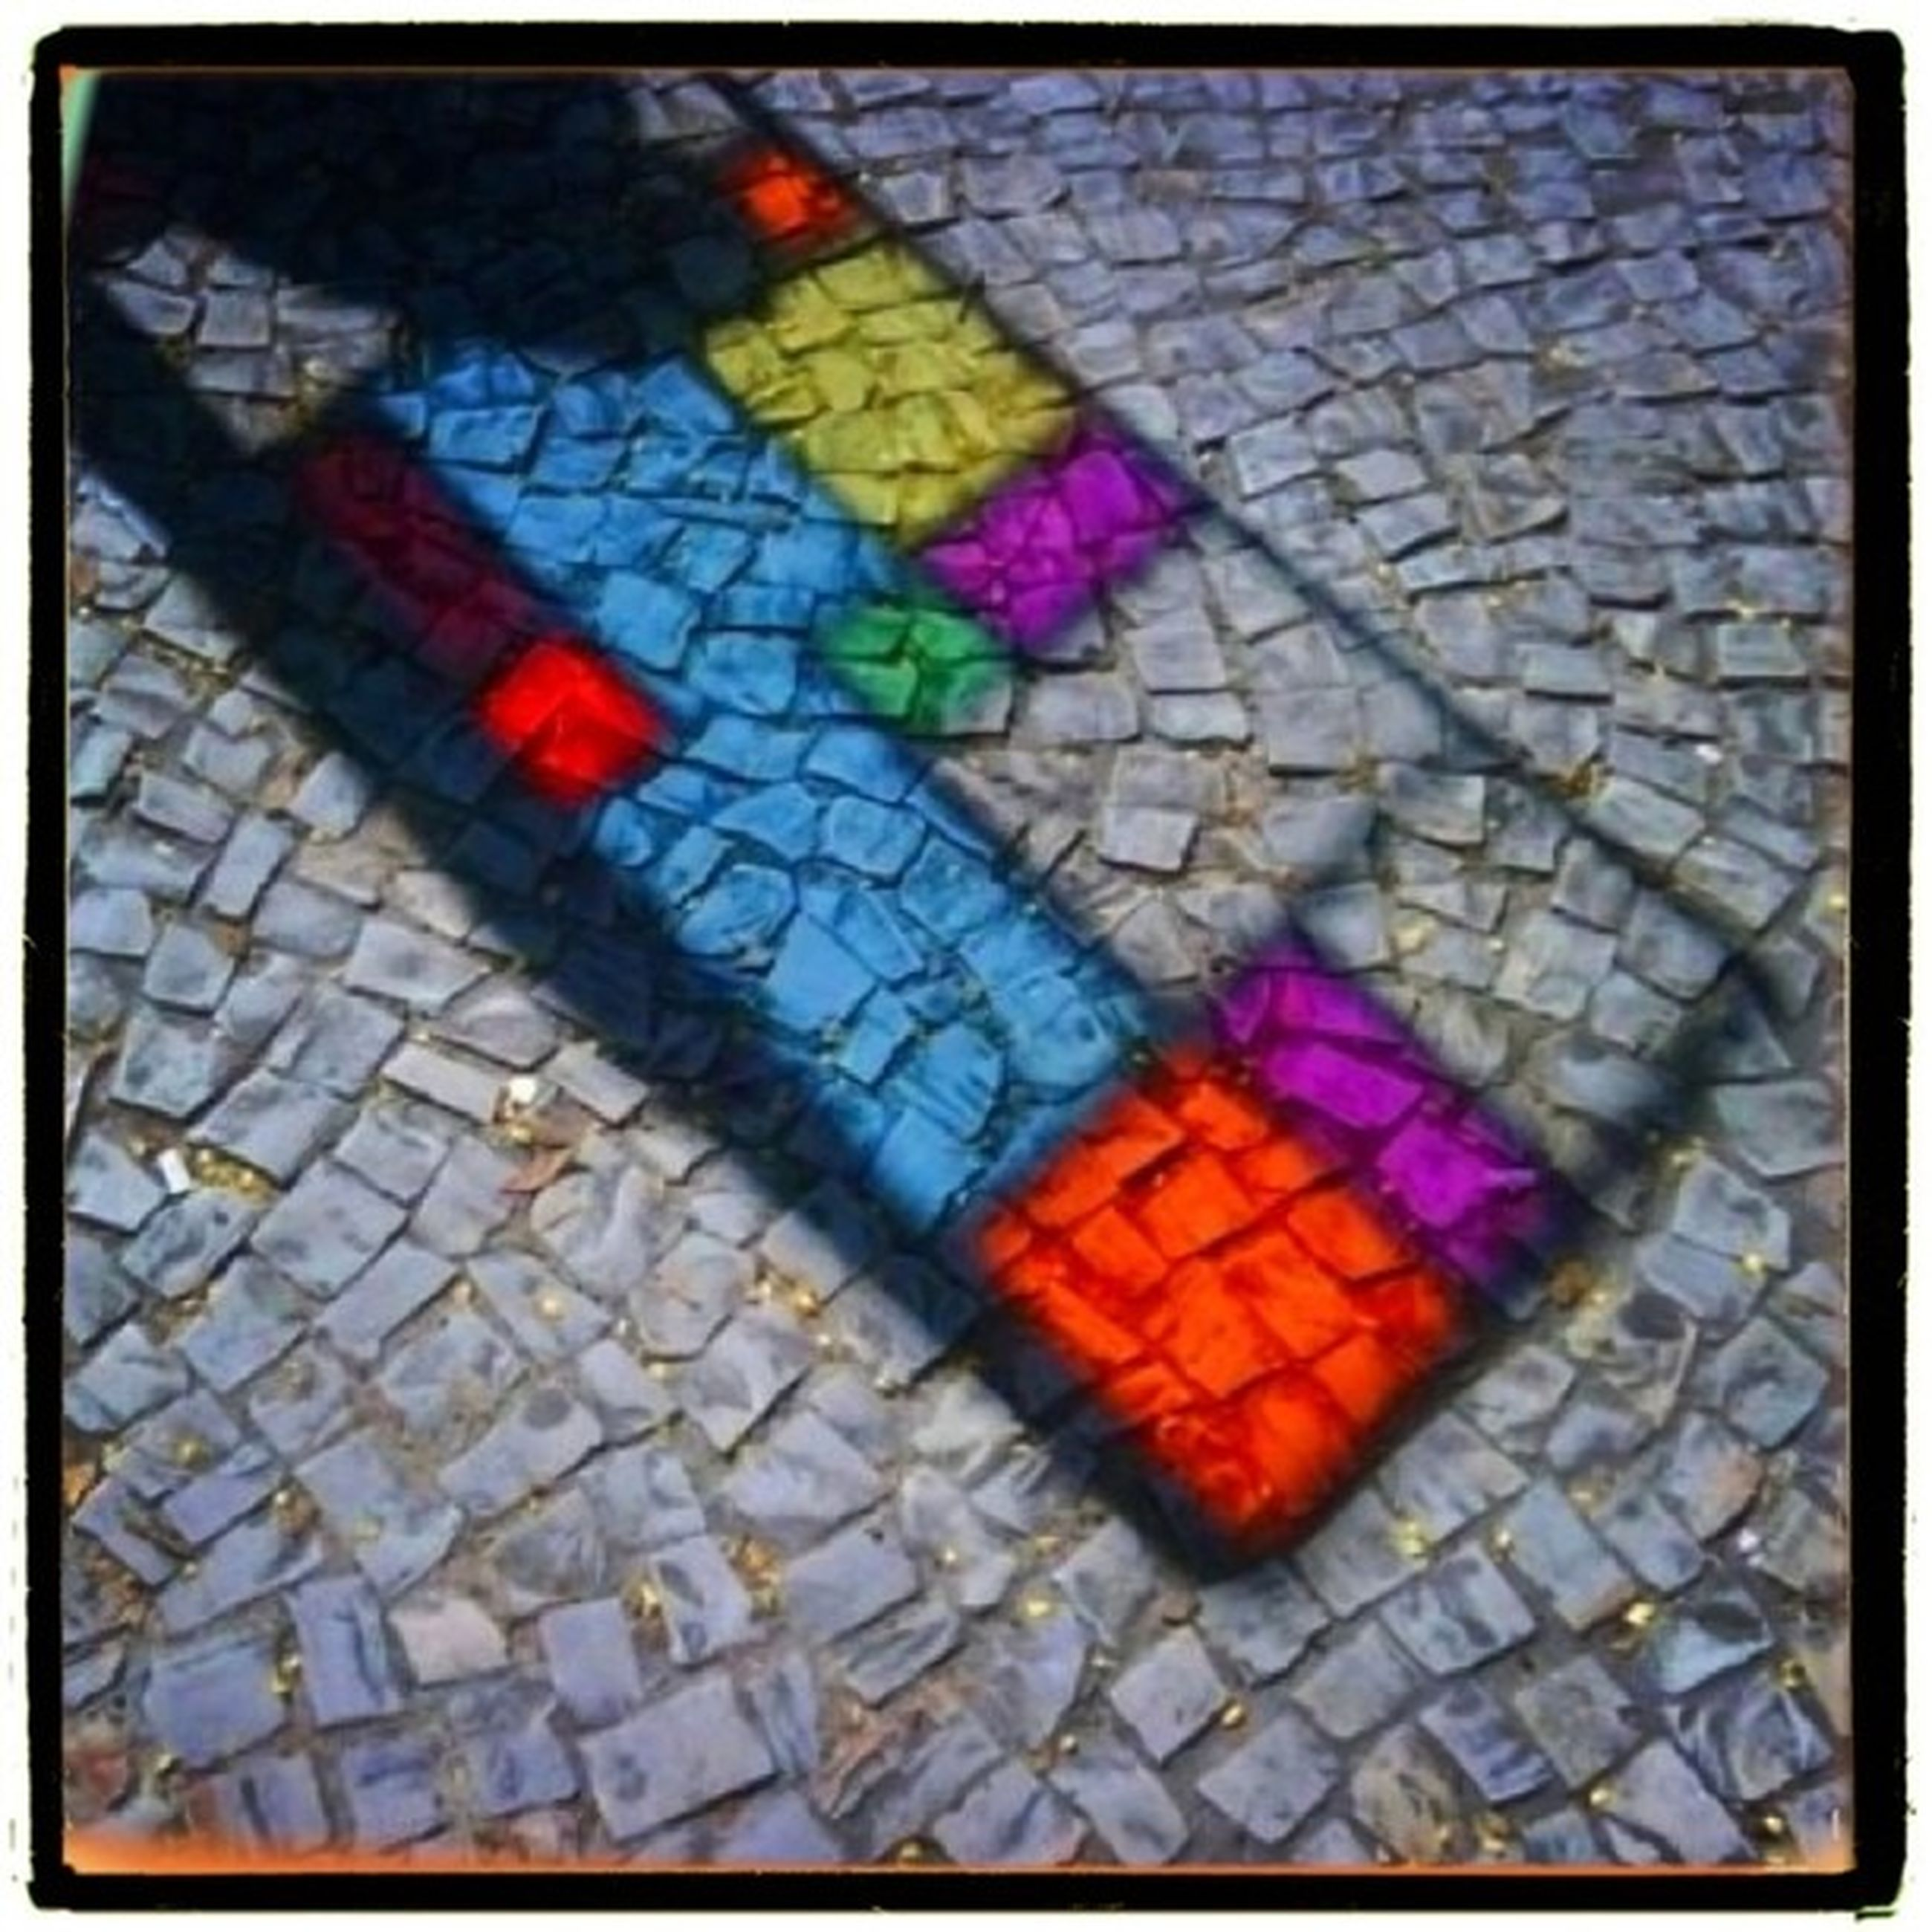 cobblestone, paving stone, transfer print, street, auto post production filter, footpath, sidewalk, pattern, high angle view, tiled floor, pavement, multi colored, tile, full frame, outdoors, day, no people, autumn, flooring, textured